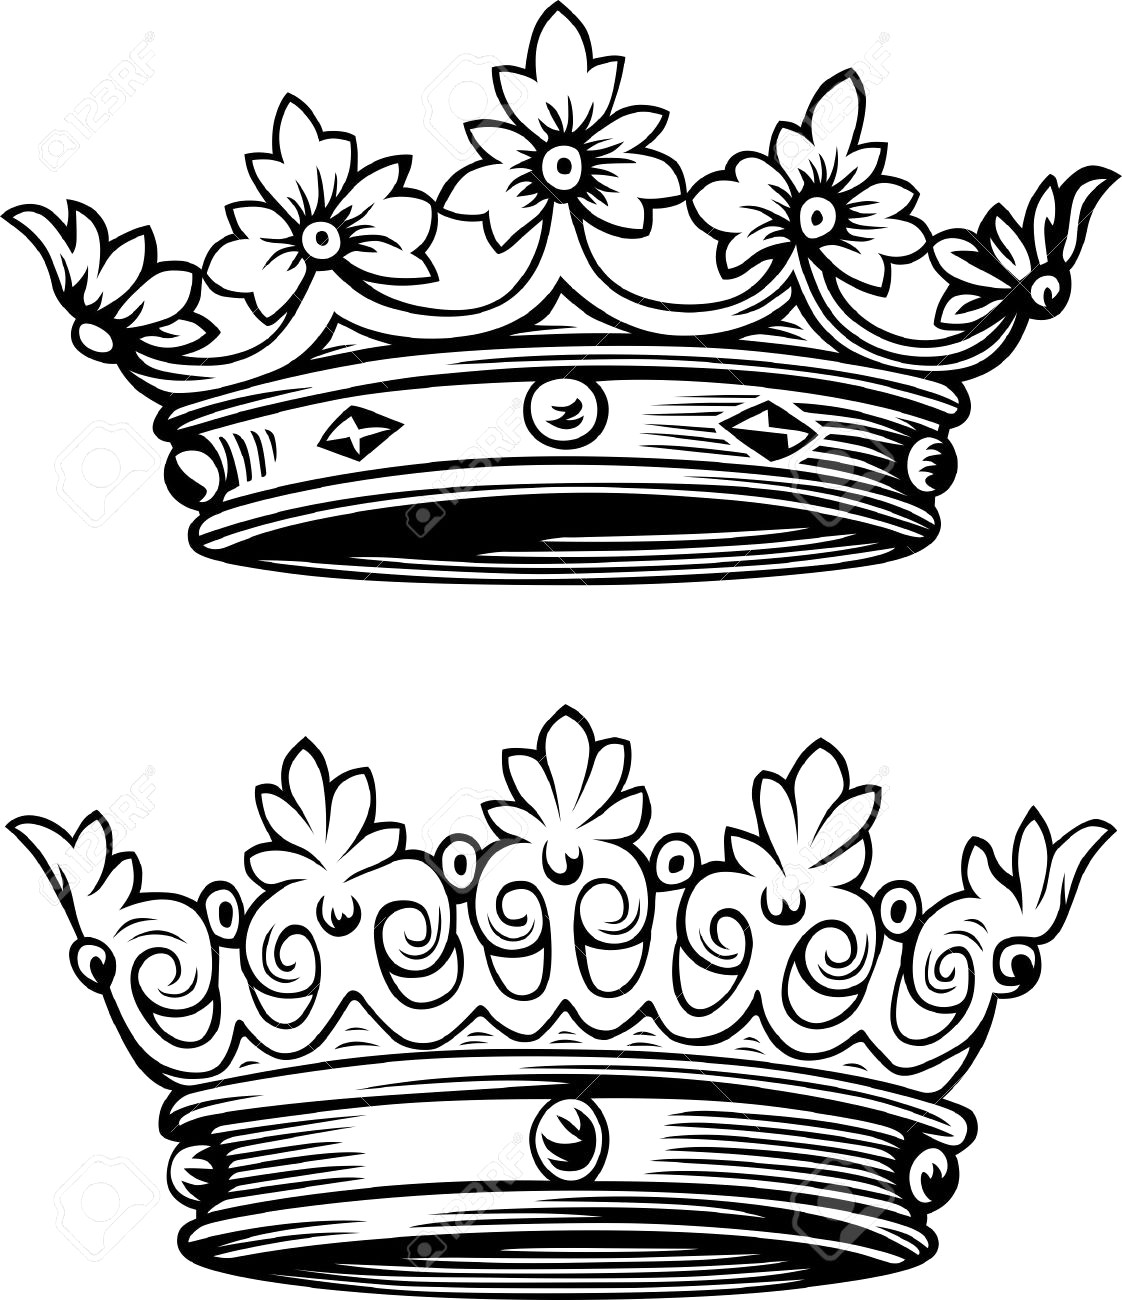 1122x1300 King And Queen Crown Drawing